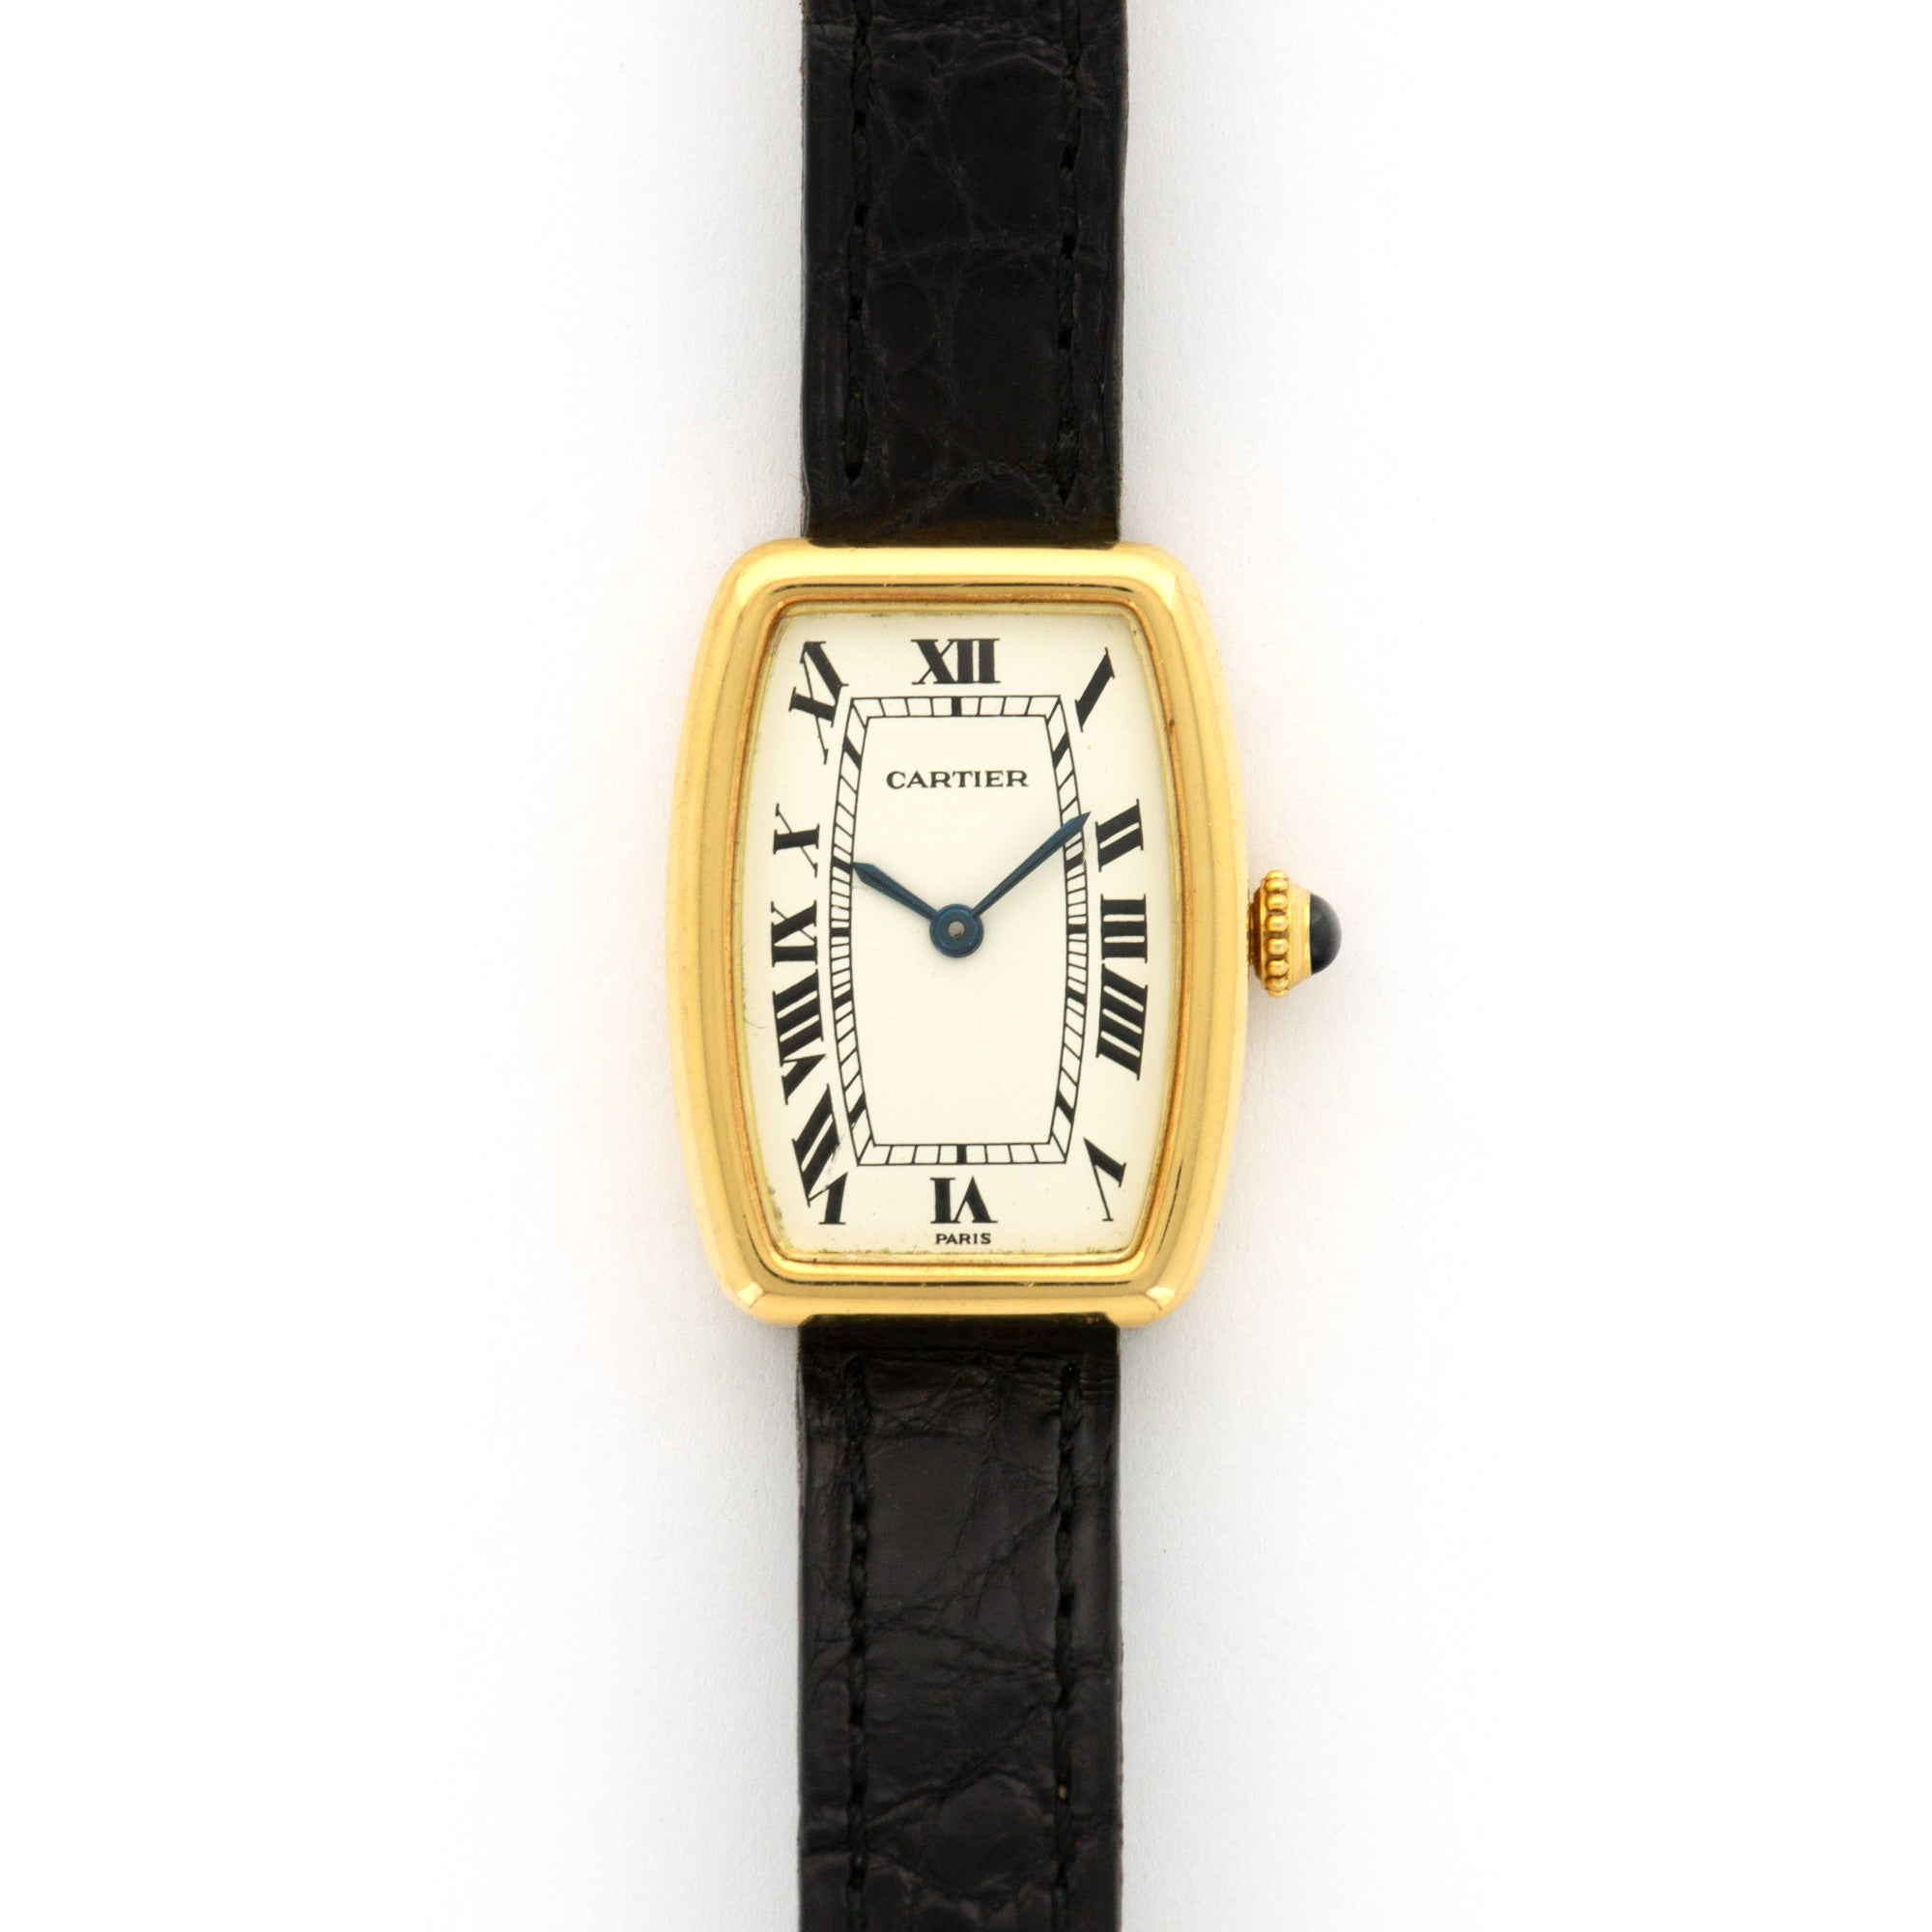 Cartier Tank Faberge N/A 18k YG  Excellent Ladies 18k YG White 19mm X 21mm Manual 1970s Croc Handmade Leather Travel Pouch